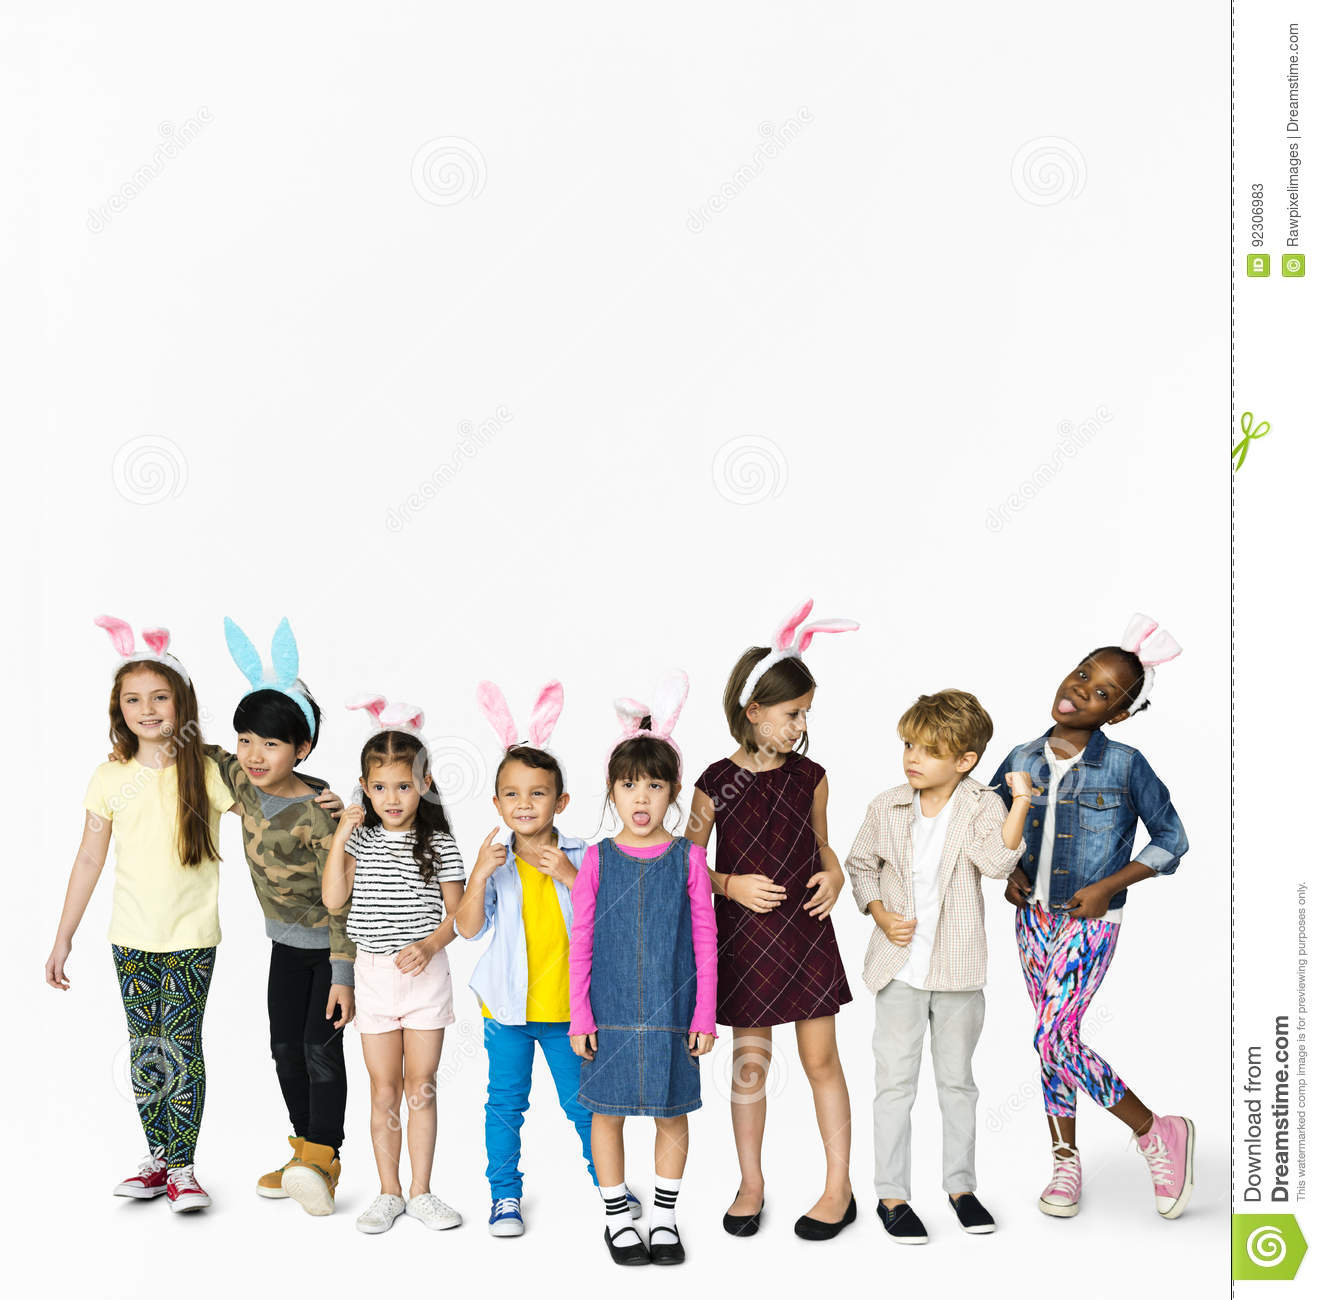 Group of Kids Wearing Bunny Ears for Easter Happiness Smiling on White Background